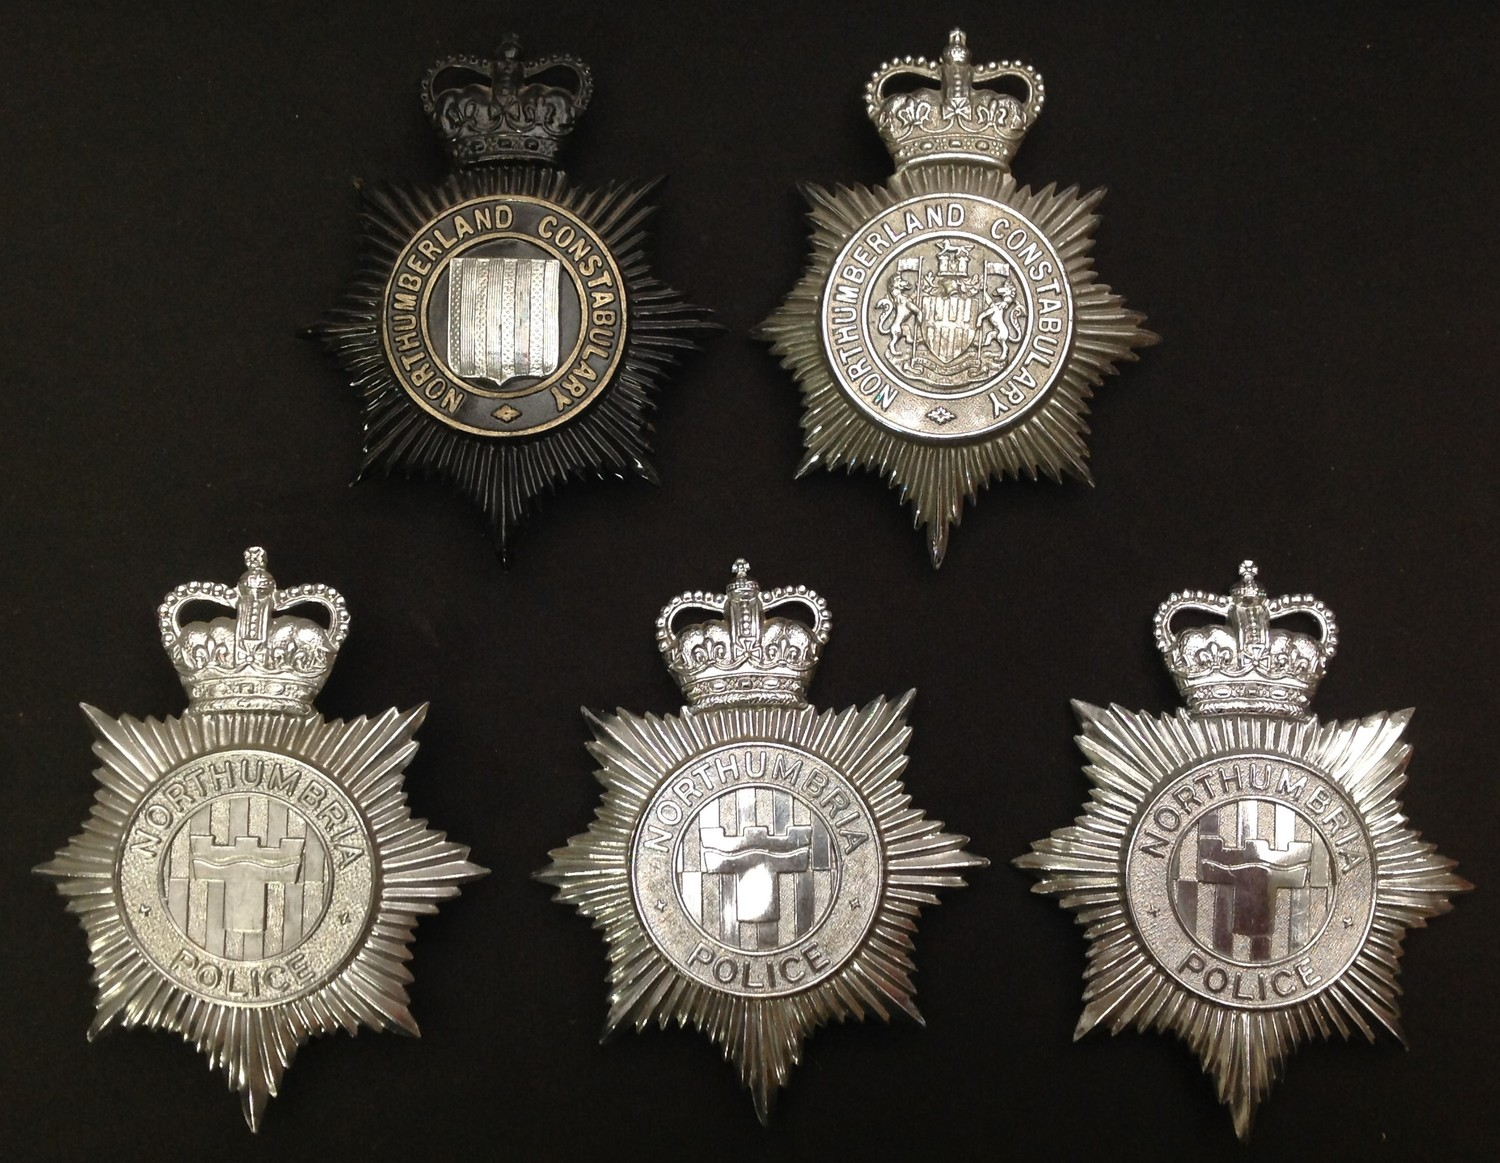 Queens Crown Northumberland Constabulary Night Plate: Queens Crown Northumberland Constabulary